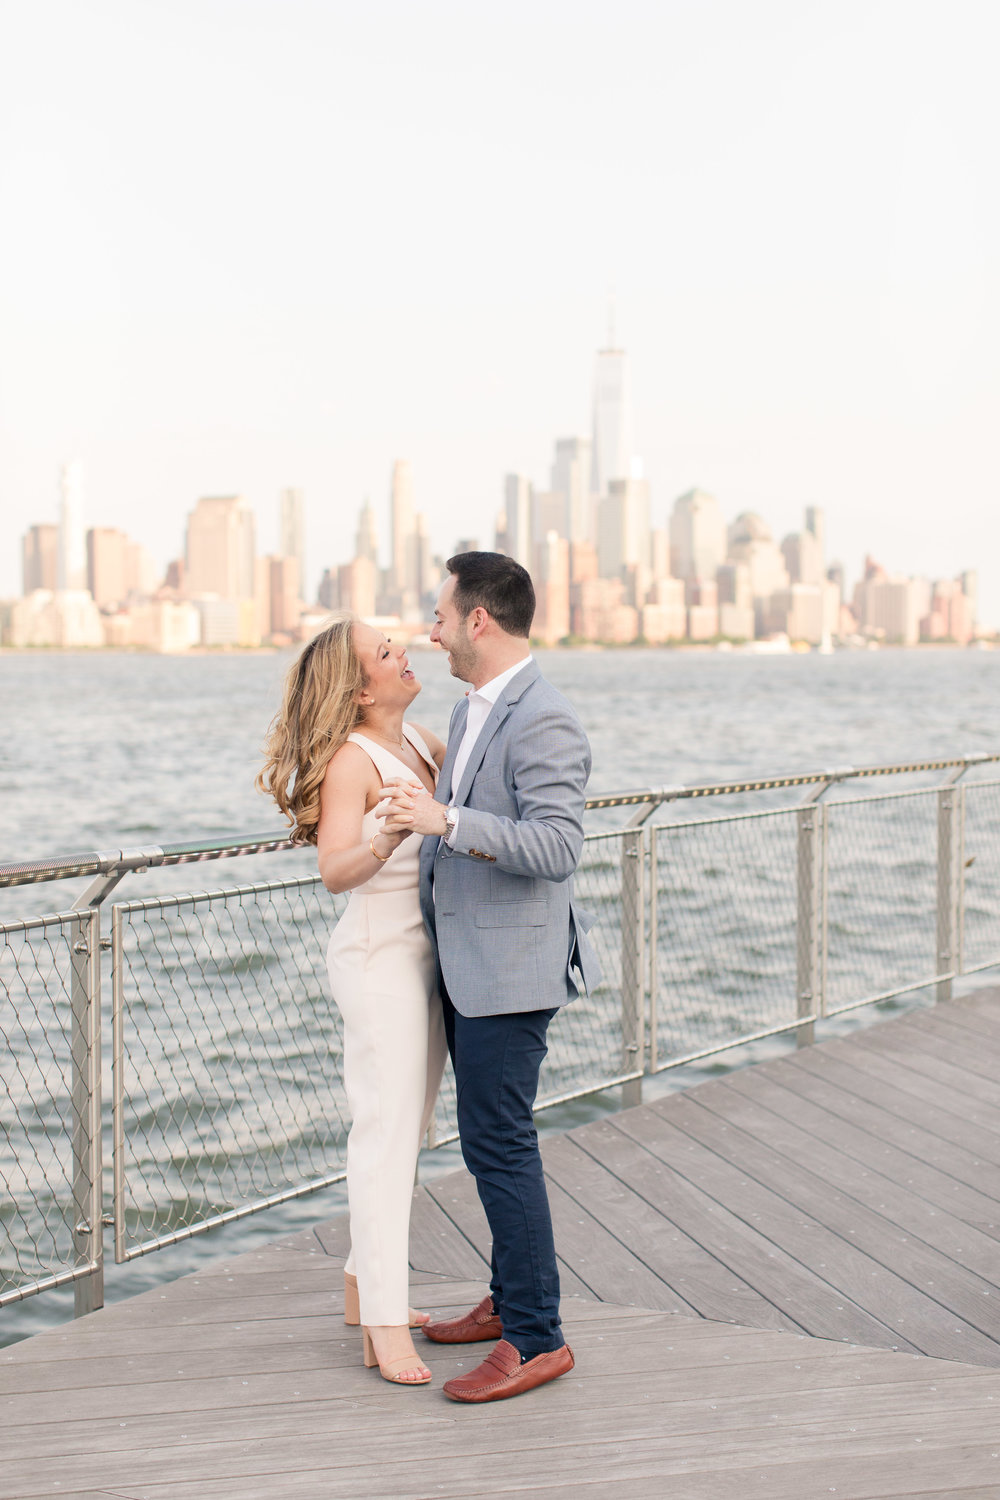 Ultimate Engagement Giveaway - Alyssa & Al - 08